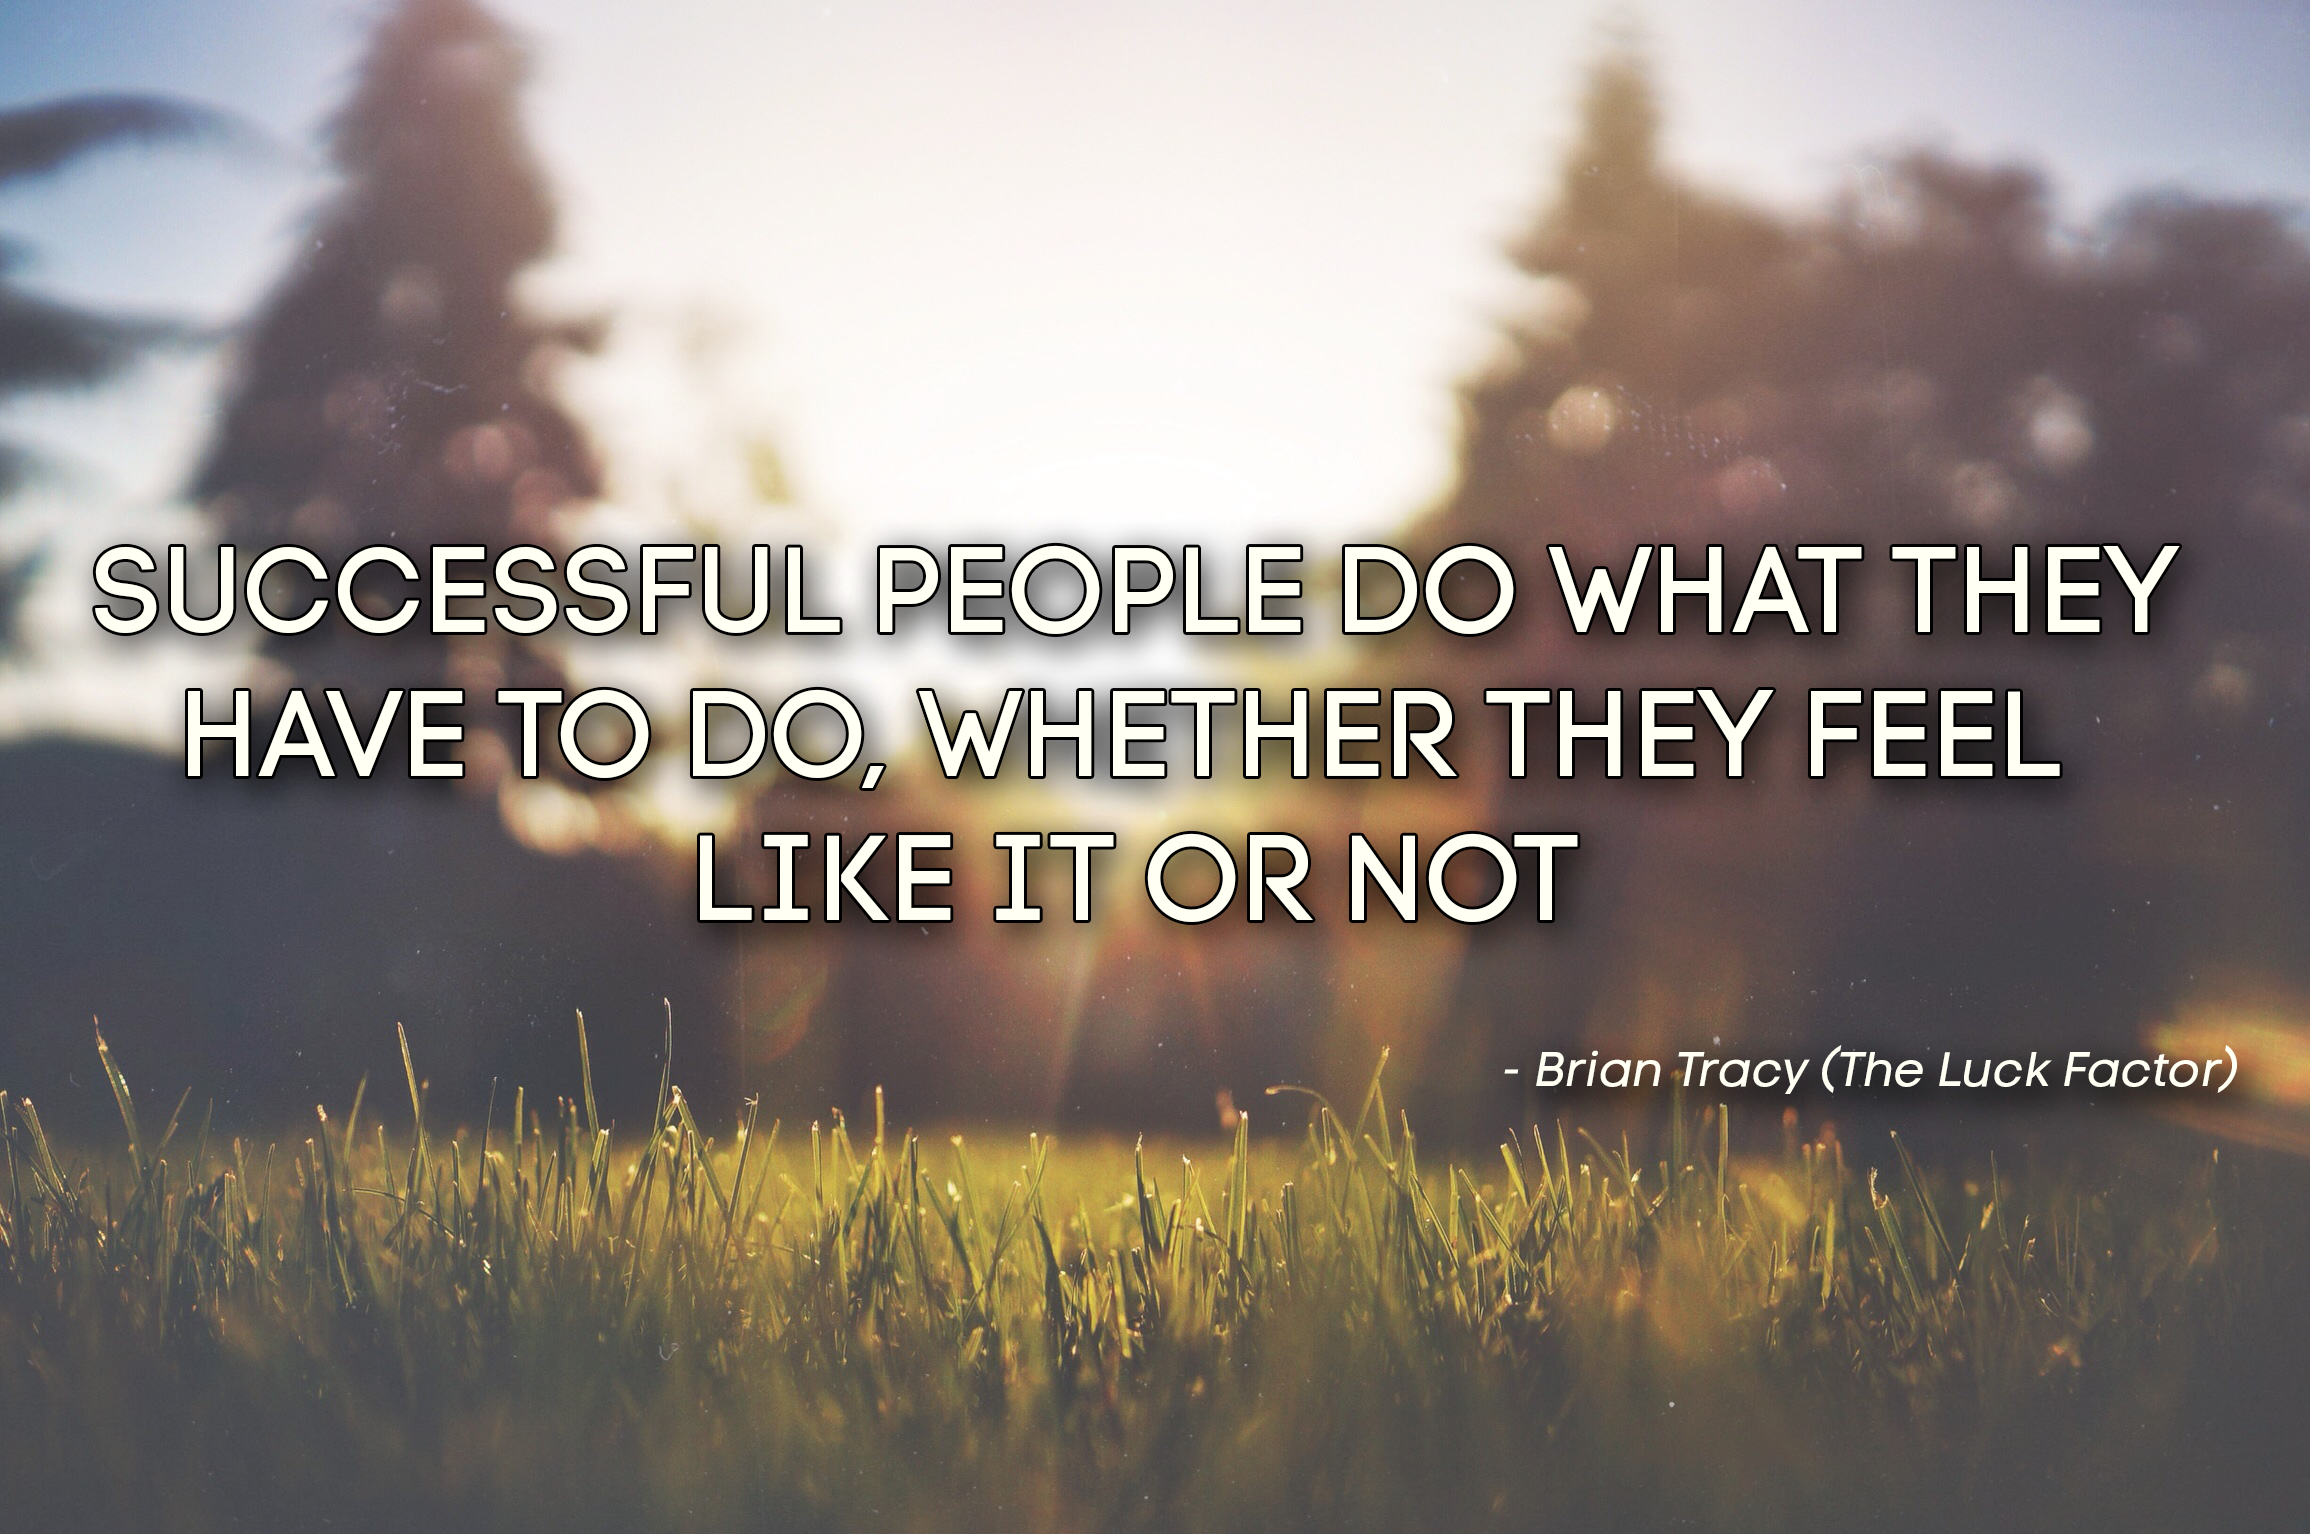 Successful people do what they have to do, whether they feel like it or not